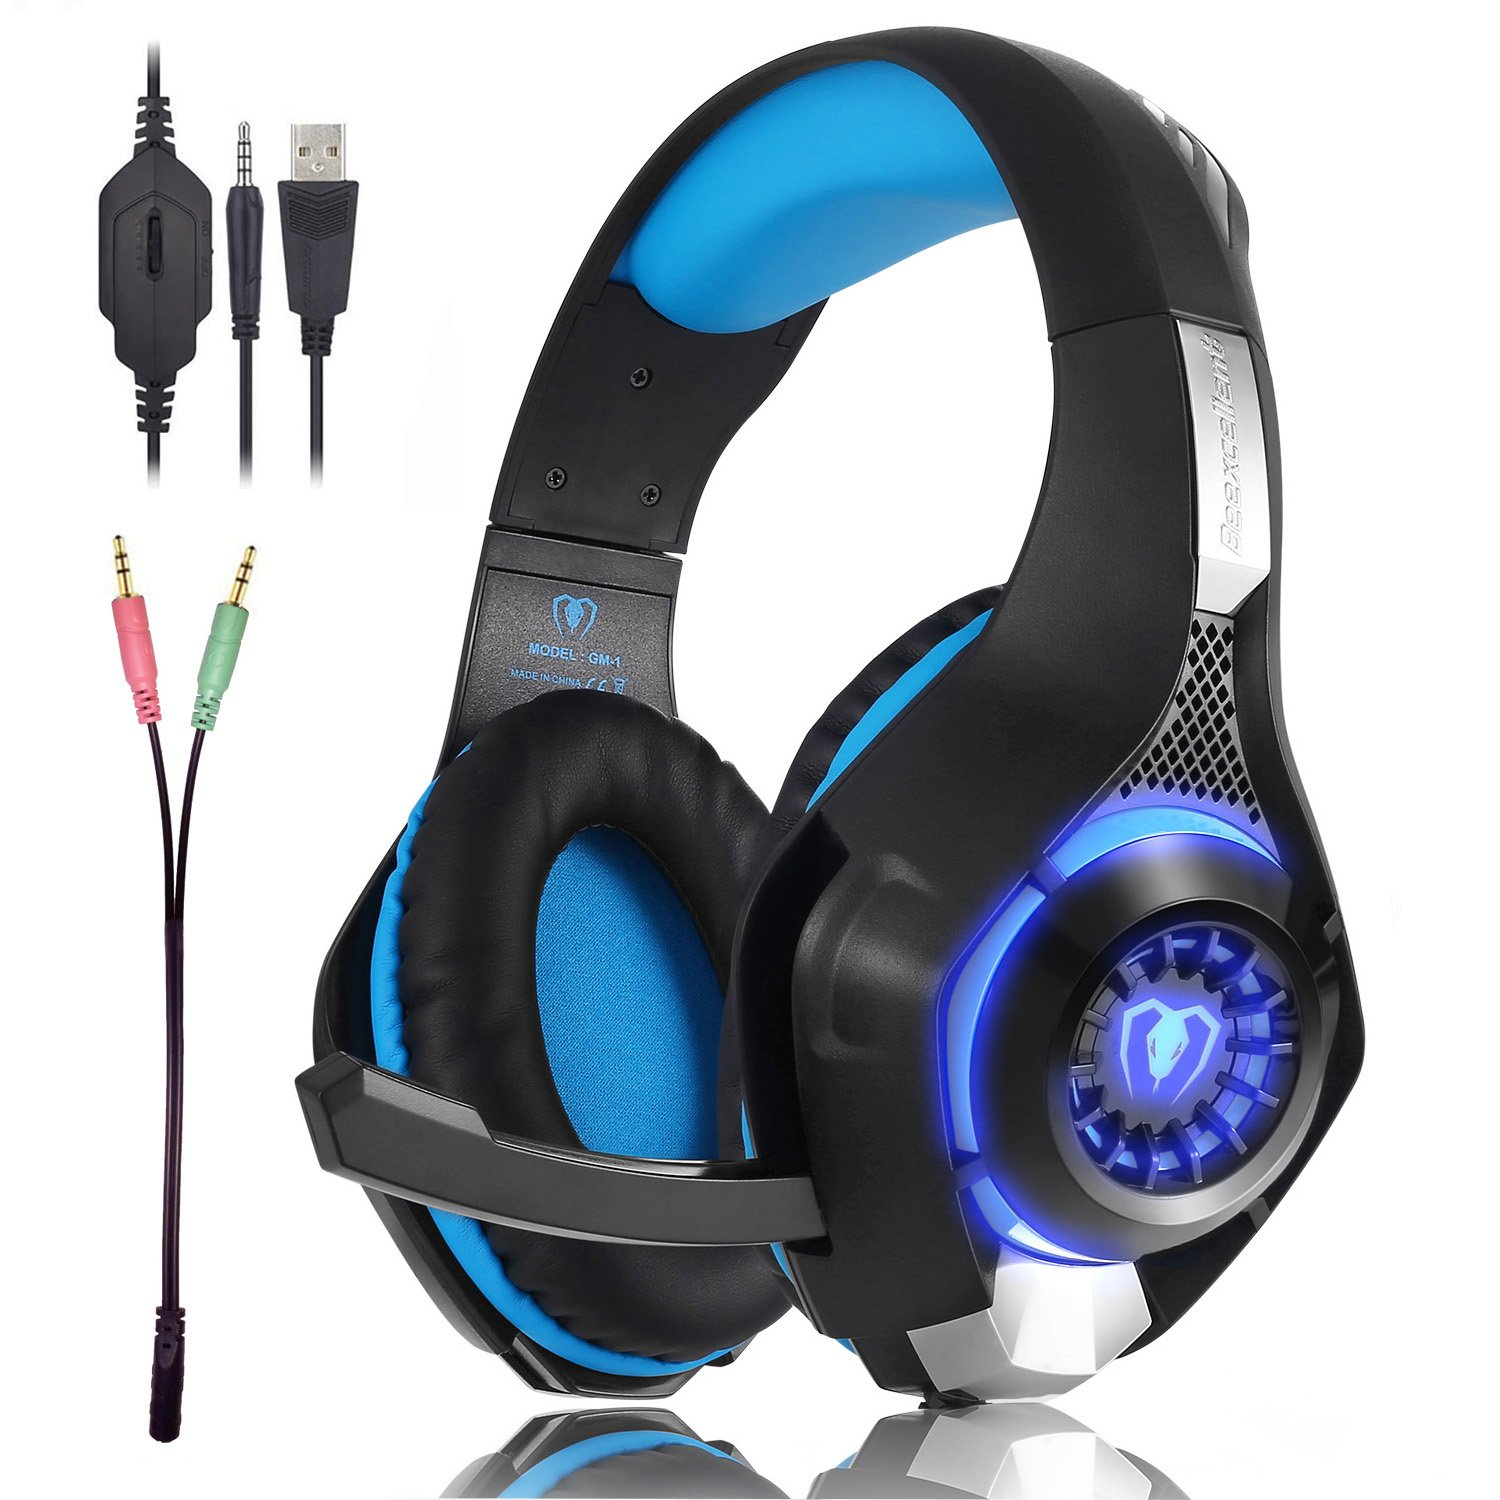 Beexcellent Gaming Headset GM-1 with Microphone for New Xbox 1 PS4 PC Cellphone Laptops Computer - Surround Sound, Noise Reduction Game Earphone-Easy Volume Control with LED Lighting 3.5MM Jack(Blue) by Beexcellent